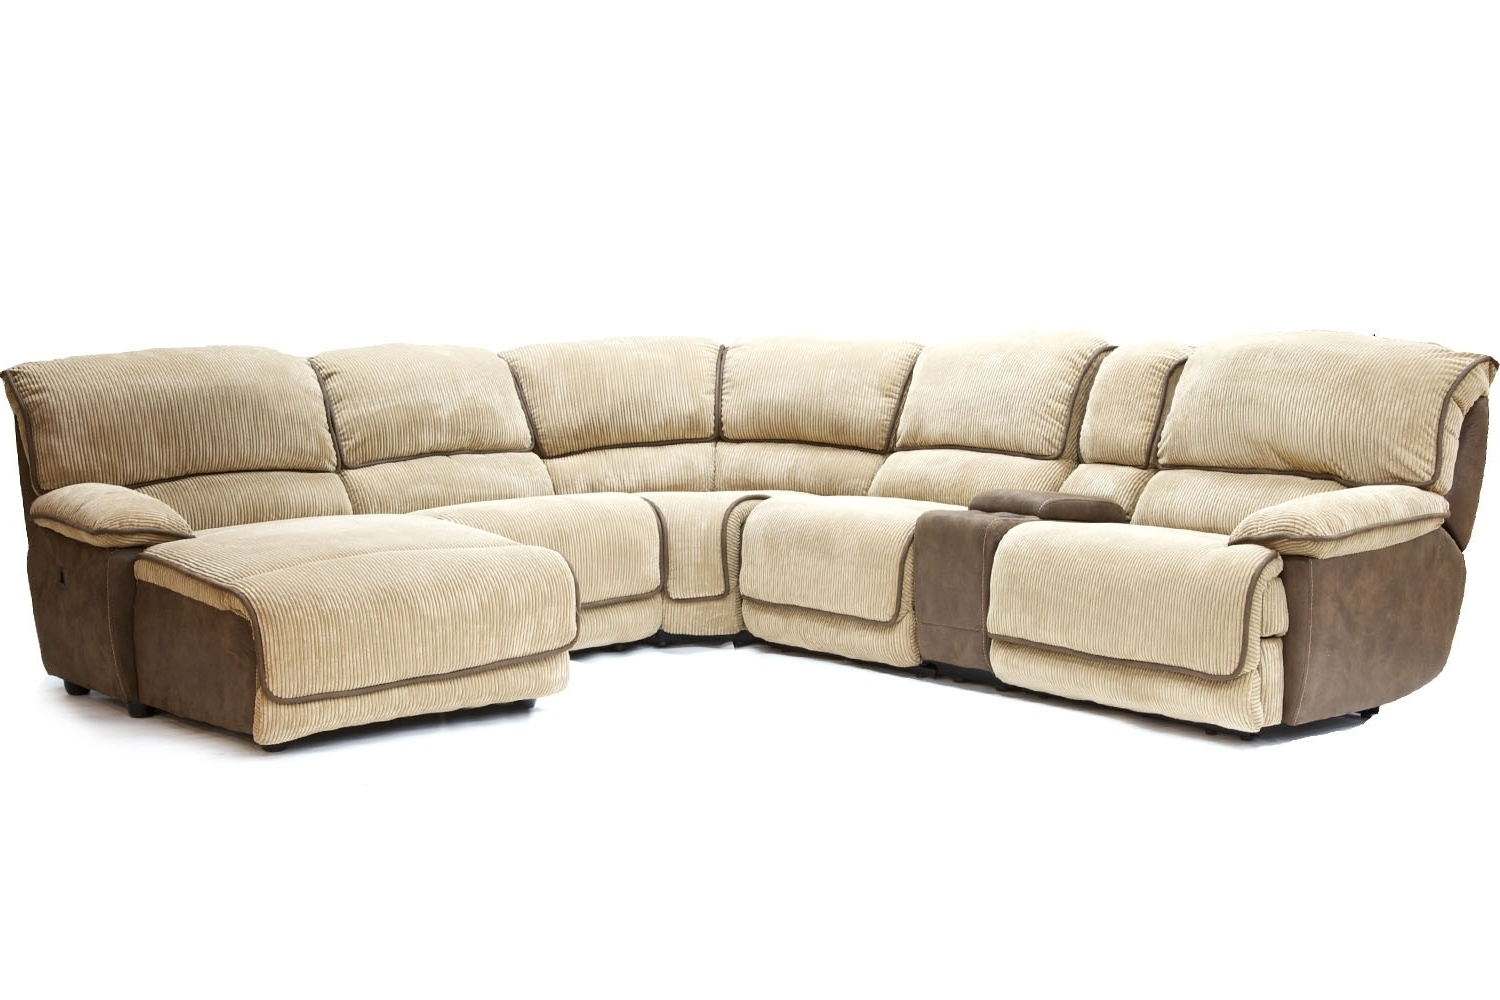 Well Liked Austin Sectional Sofas Intended For Gallery Austin Sectional Sofa – Mediasupload (View 2 of 15)